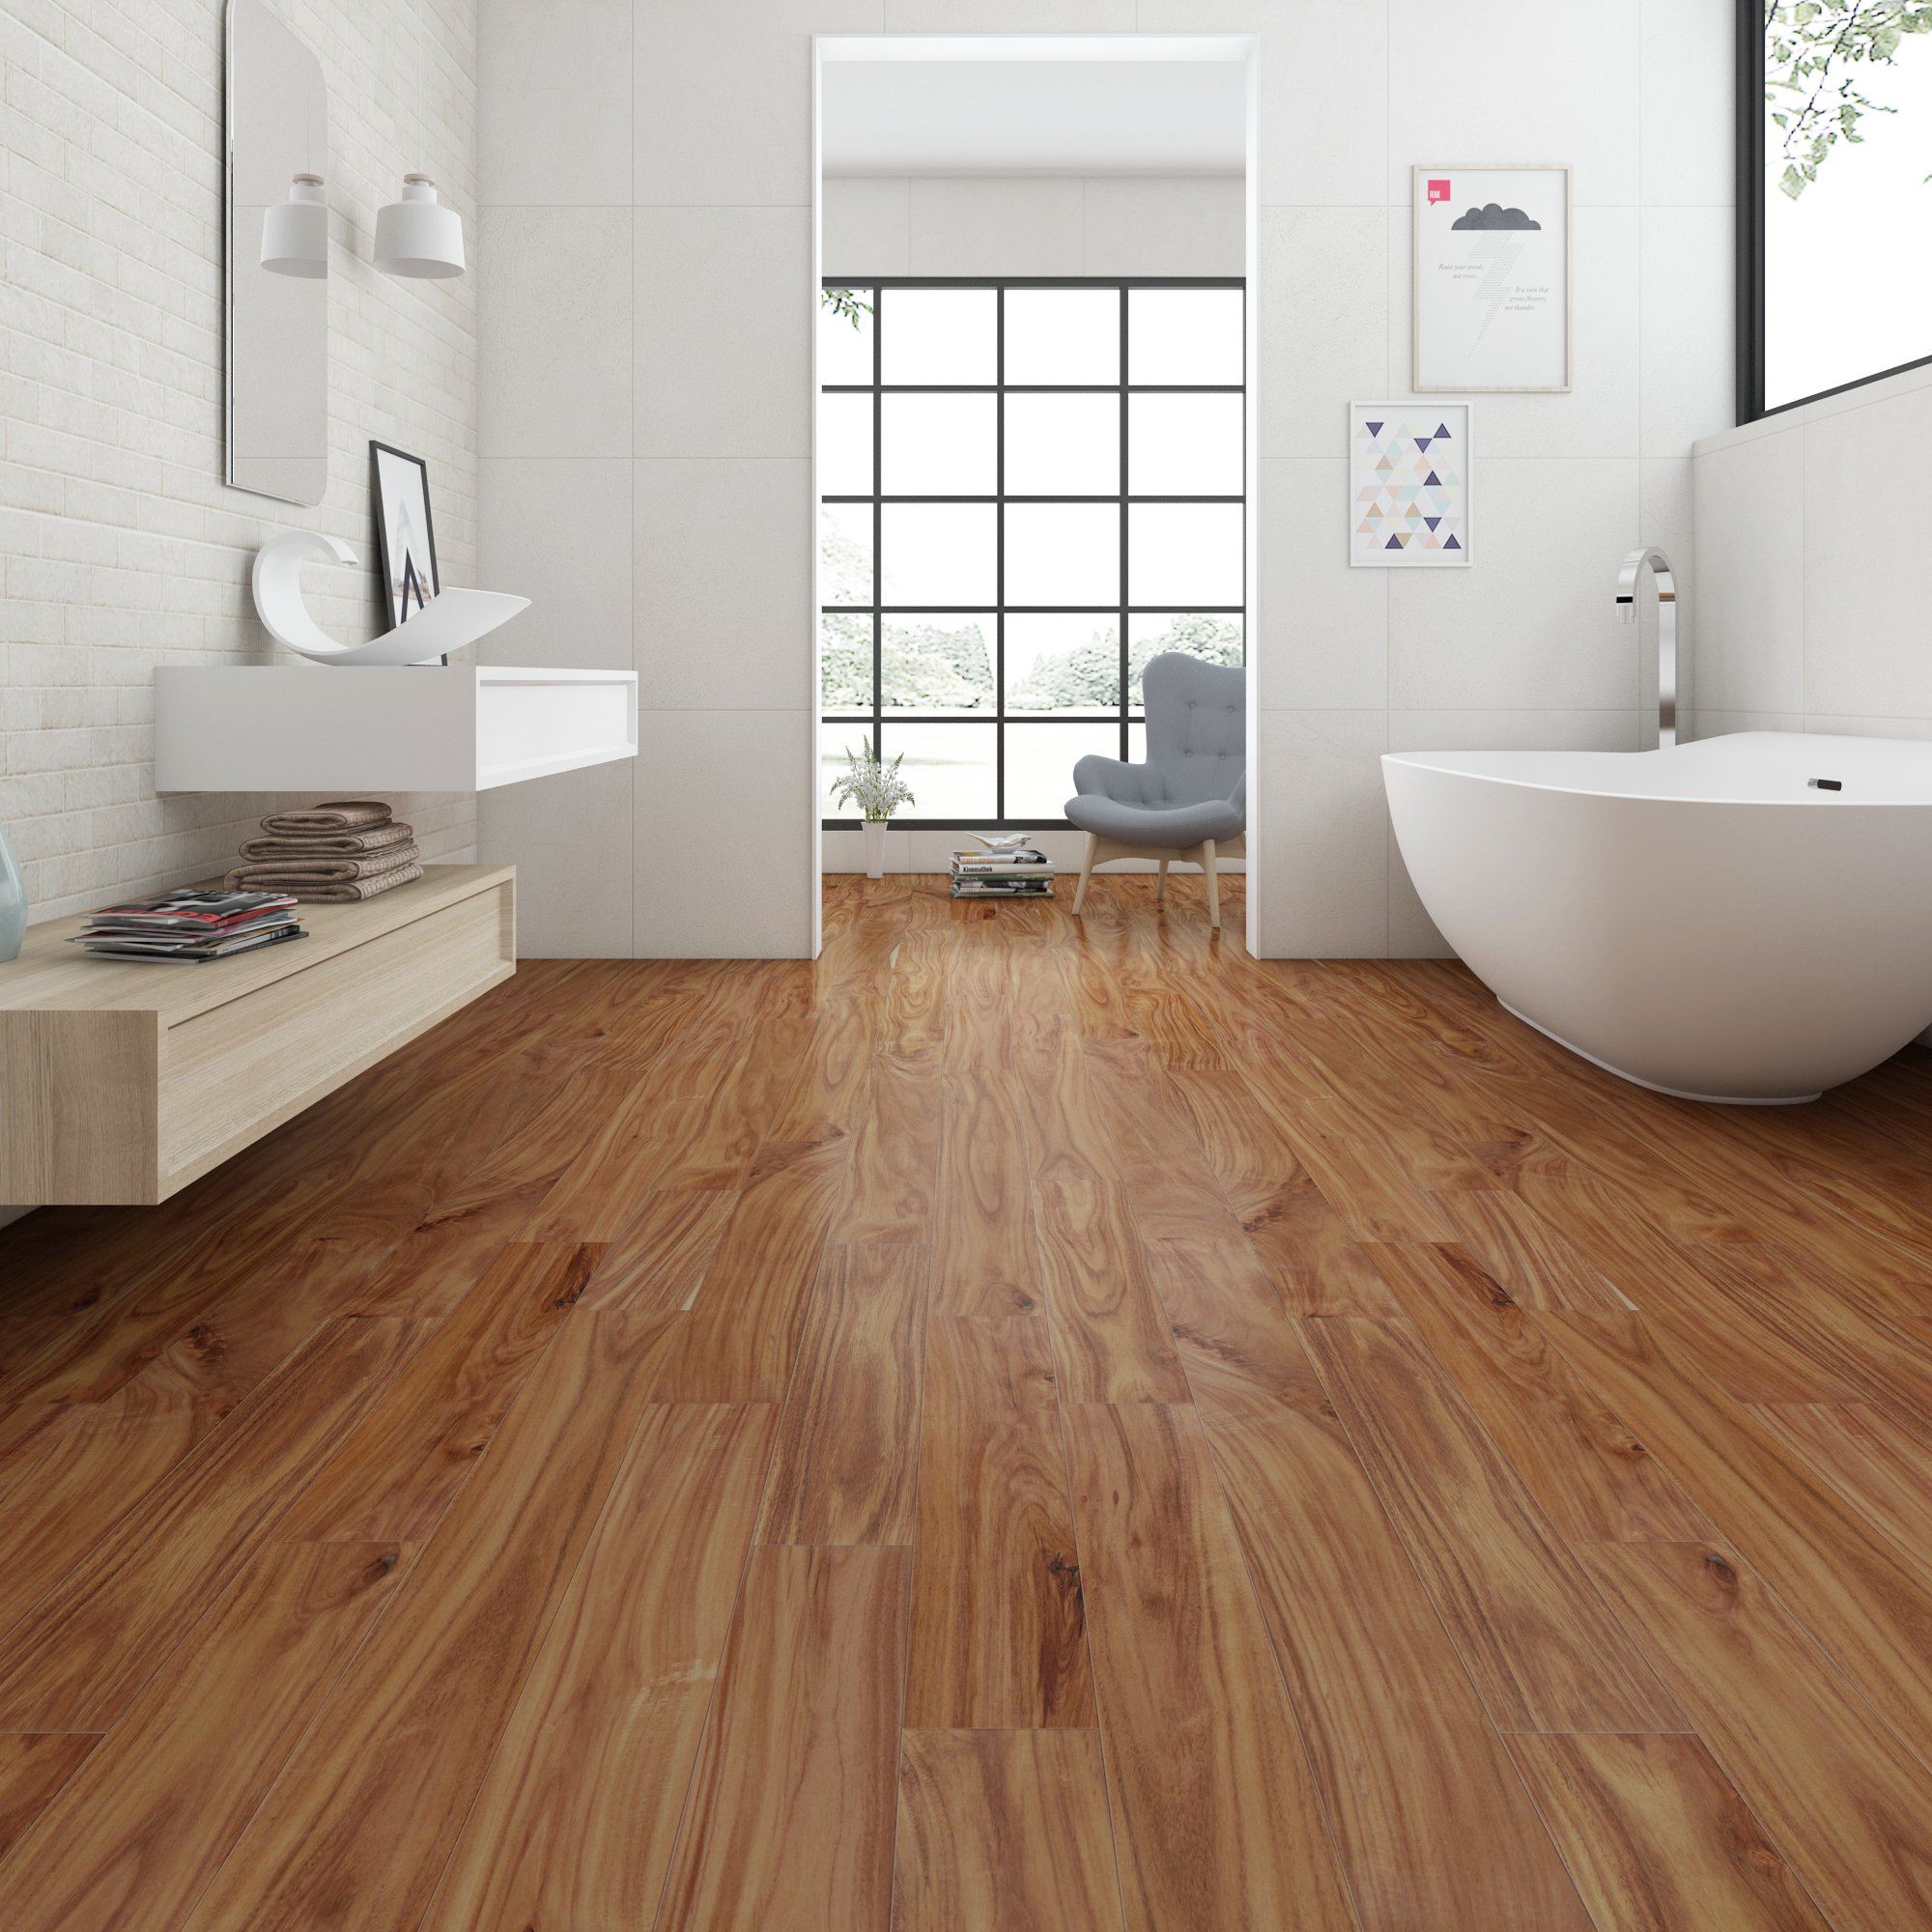 Acacia Natural_Bathroom 1.jpg